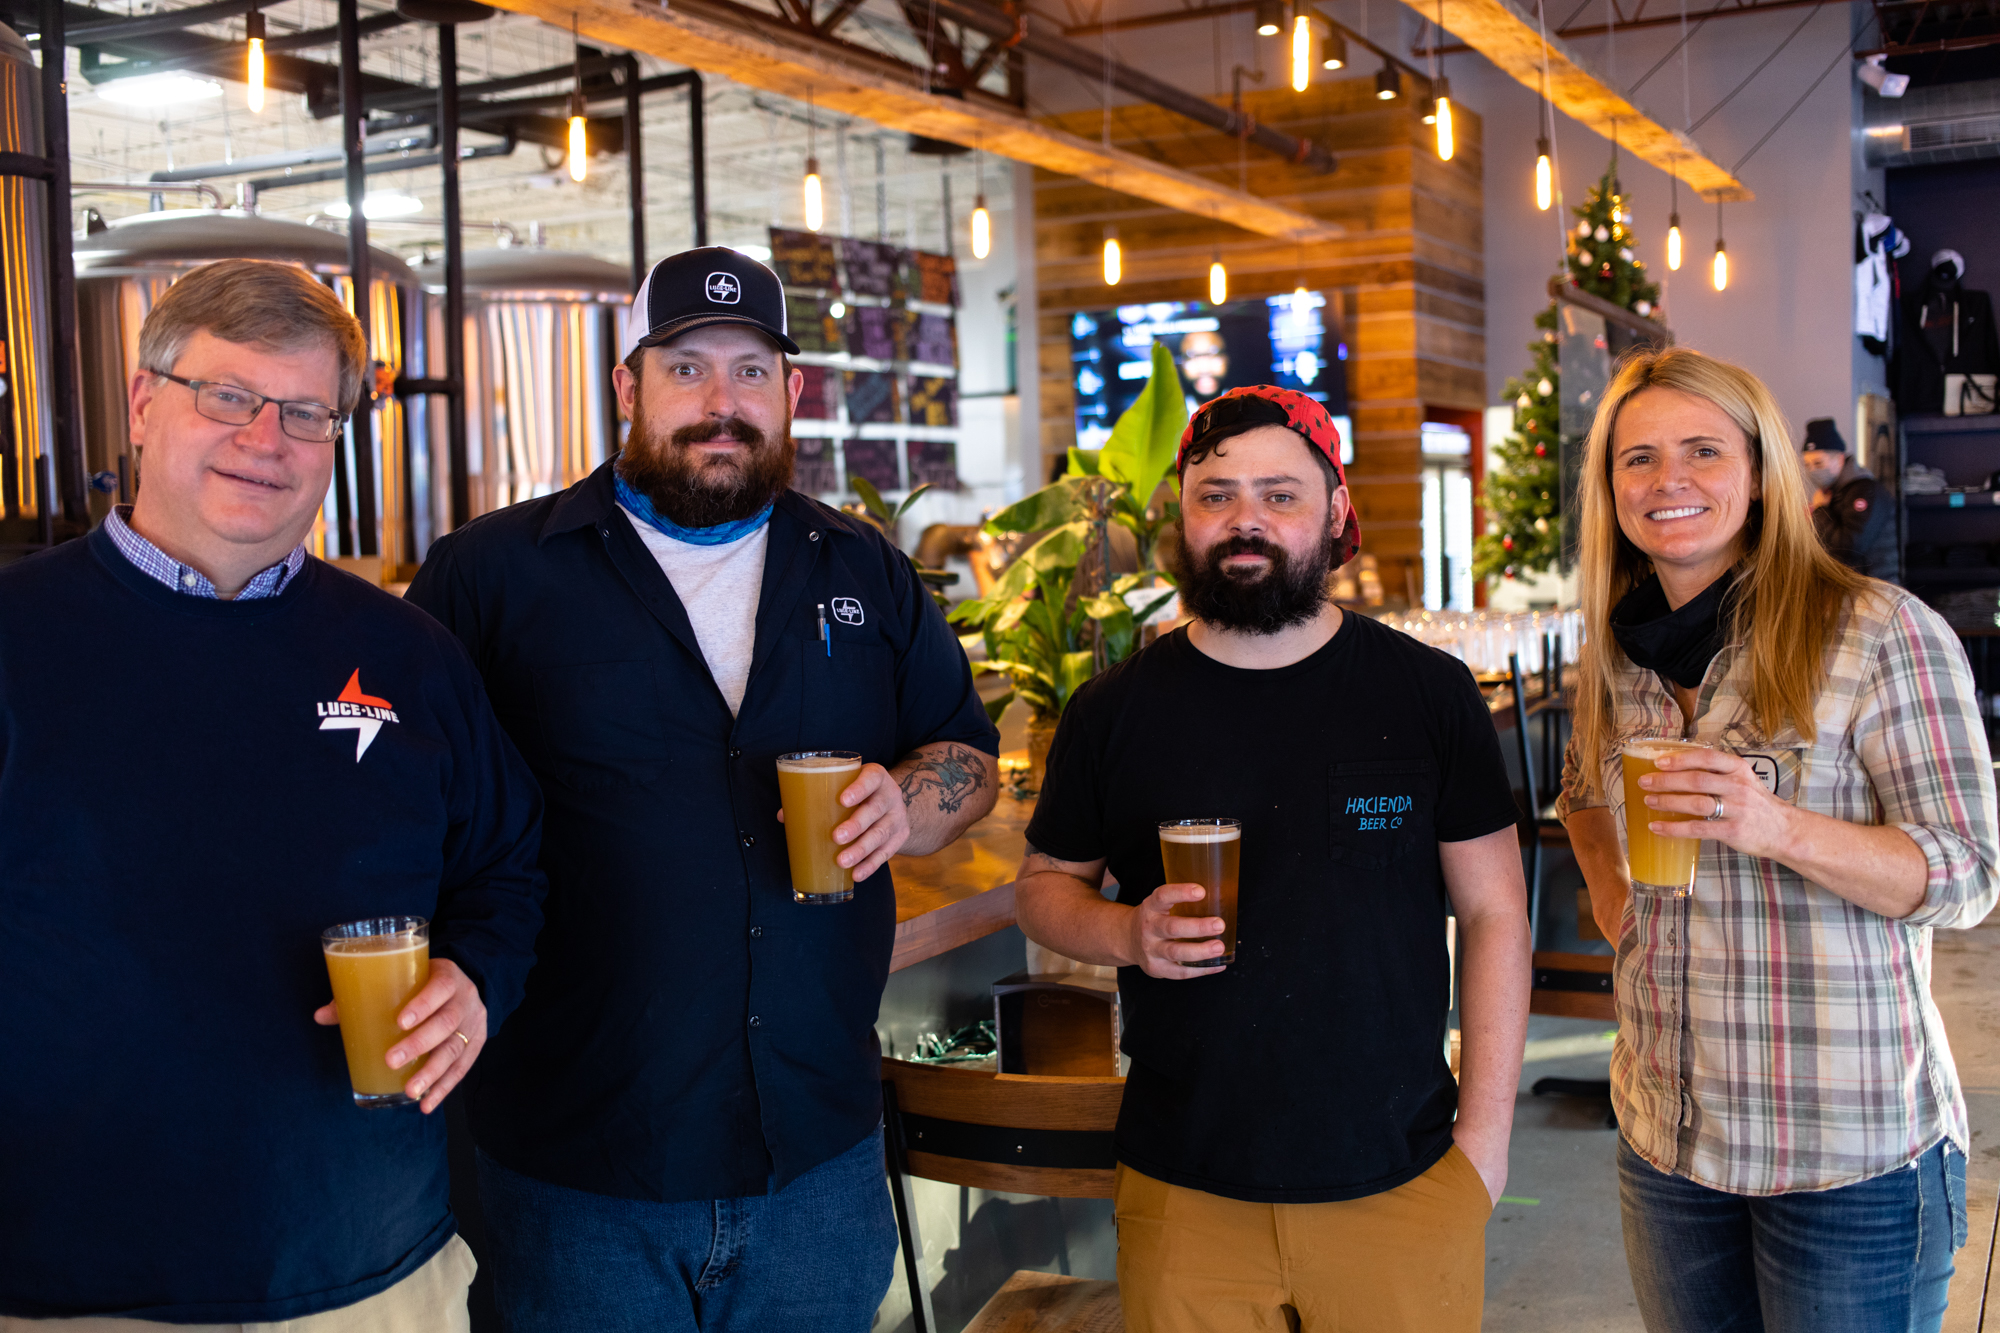 L to R: Luce Line co-founder and CEO Tim Naumann, taproom manager Todd Zallaps, head brewer Danny McMahon, and co-founder, COO, and CFO Kate Coward • Photo by Jordan Wipf